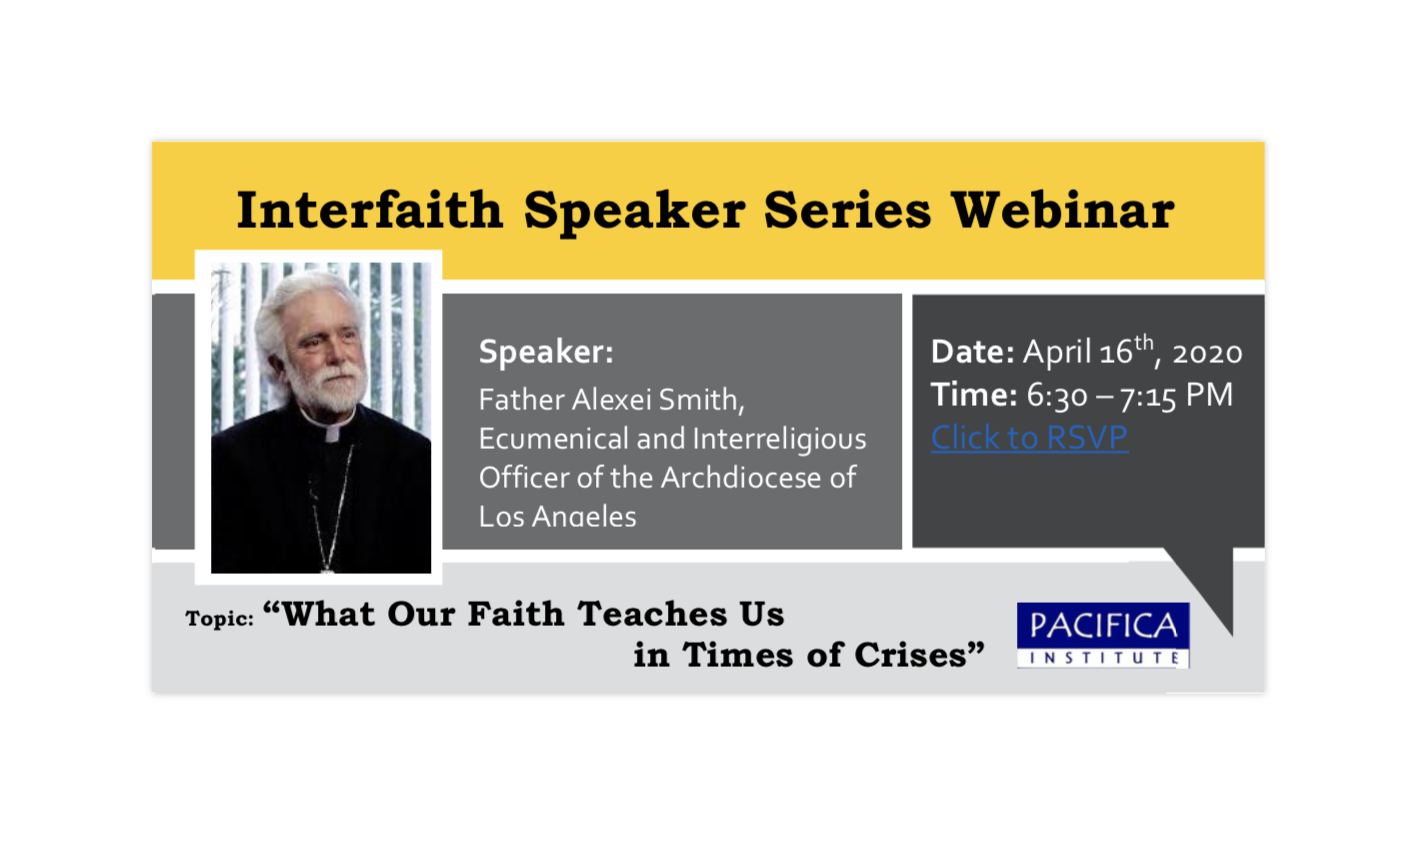 Interfaith Webinar: What Our Faith Teaches us in Times of Crises, Father Alexei Smith- Ecumenical and Interreligious Officer of the Archdiocese of Los Angeles